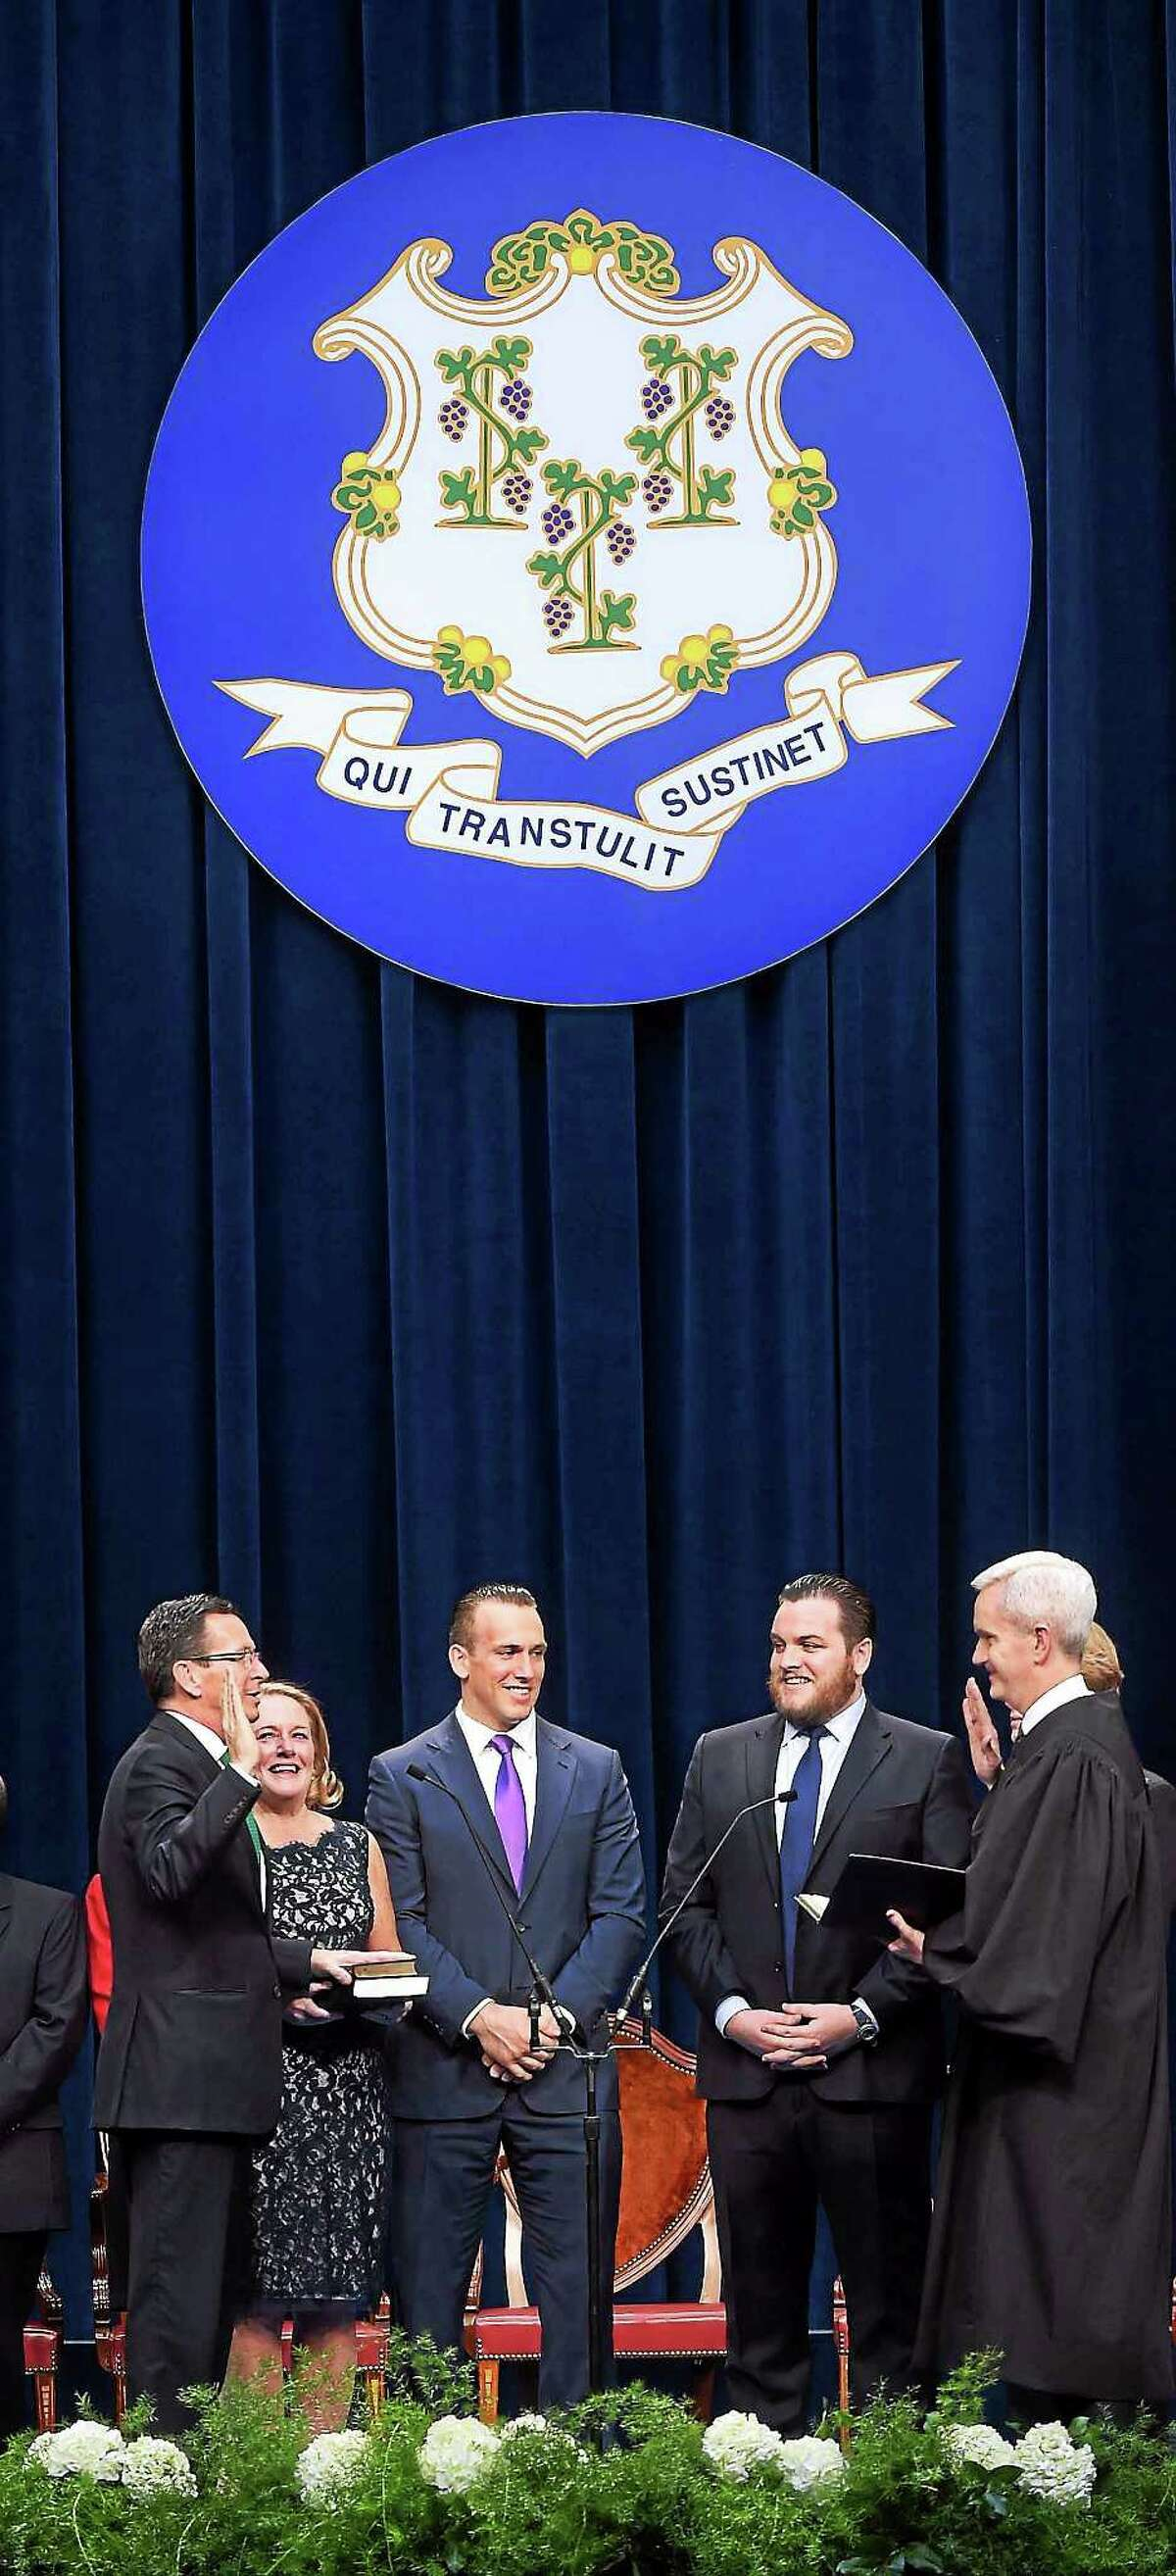 (Arnold Gold — New Haven Register) Governor Dannel P. Malloy (left) is sworn into office by Connecticut Supreme Court Justice Andrew J. McDonald (right) in the William A. O'Neill State Armory in Hartford on January 7, 2015.